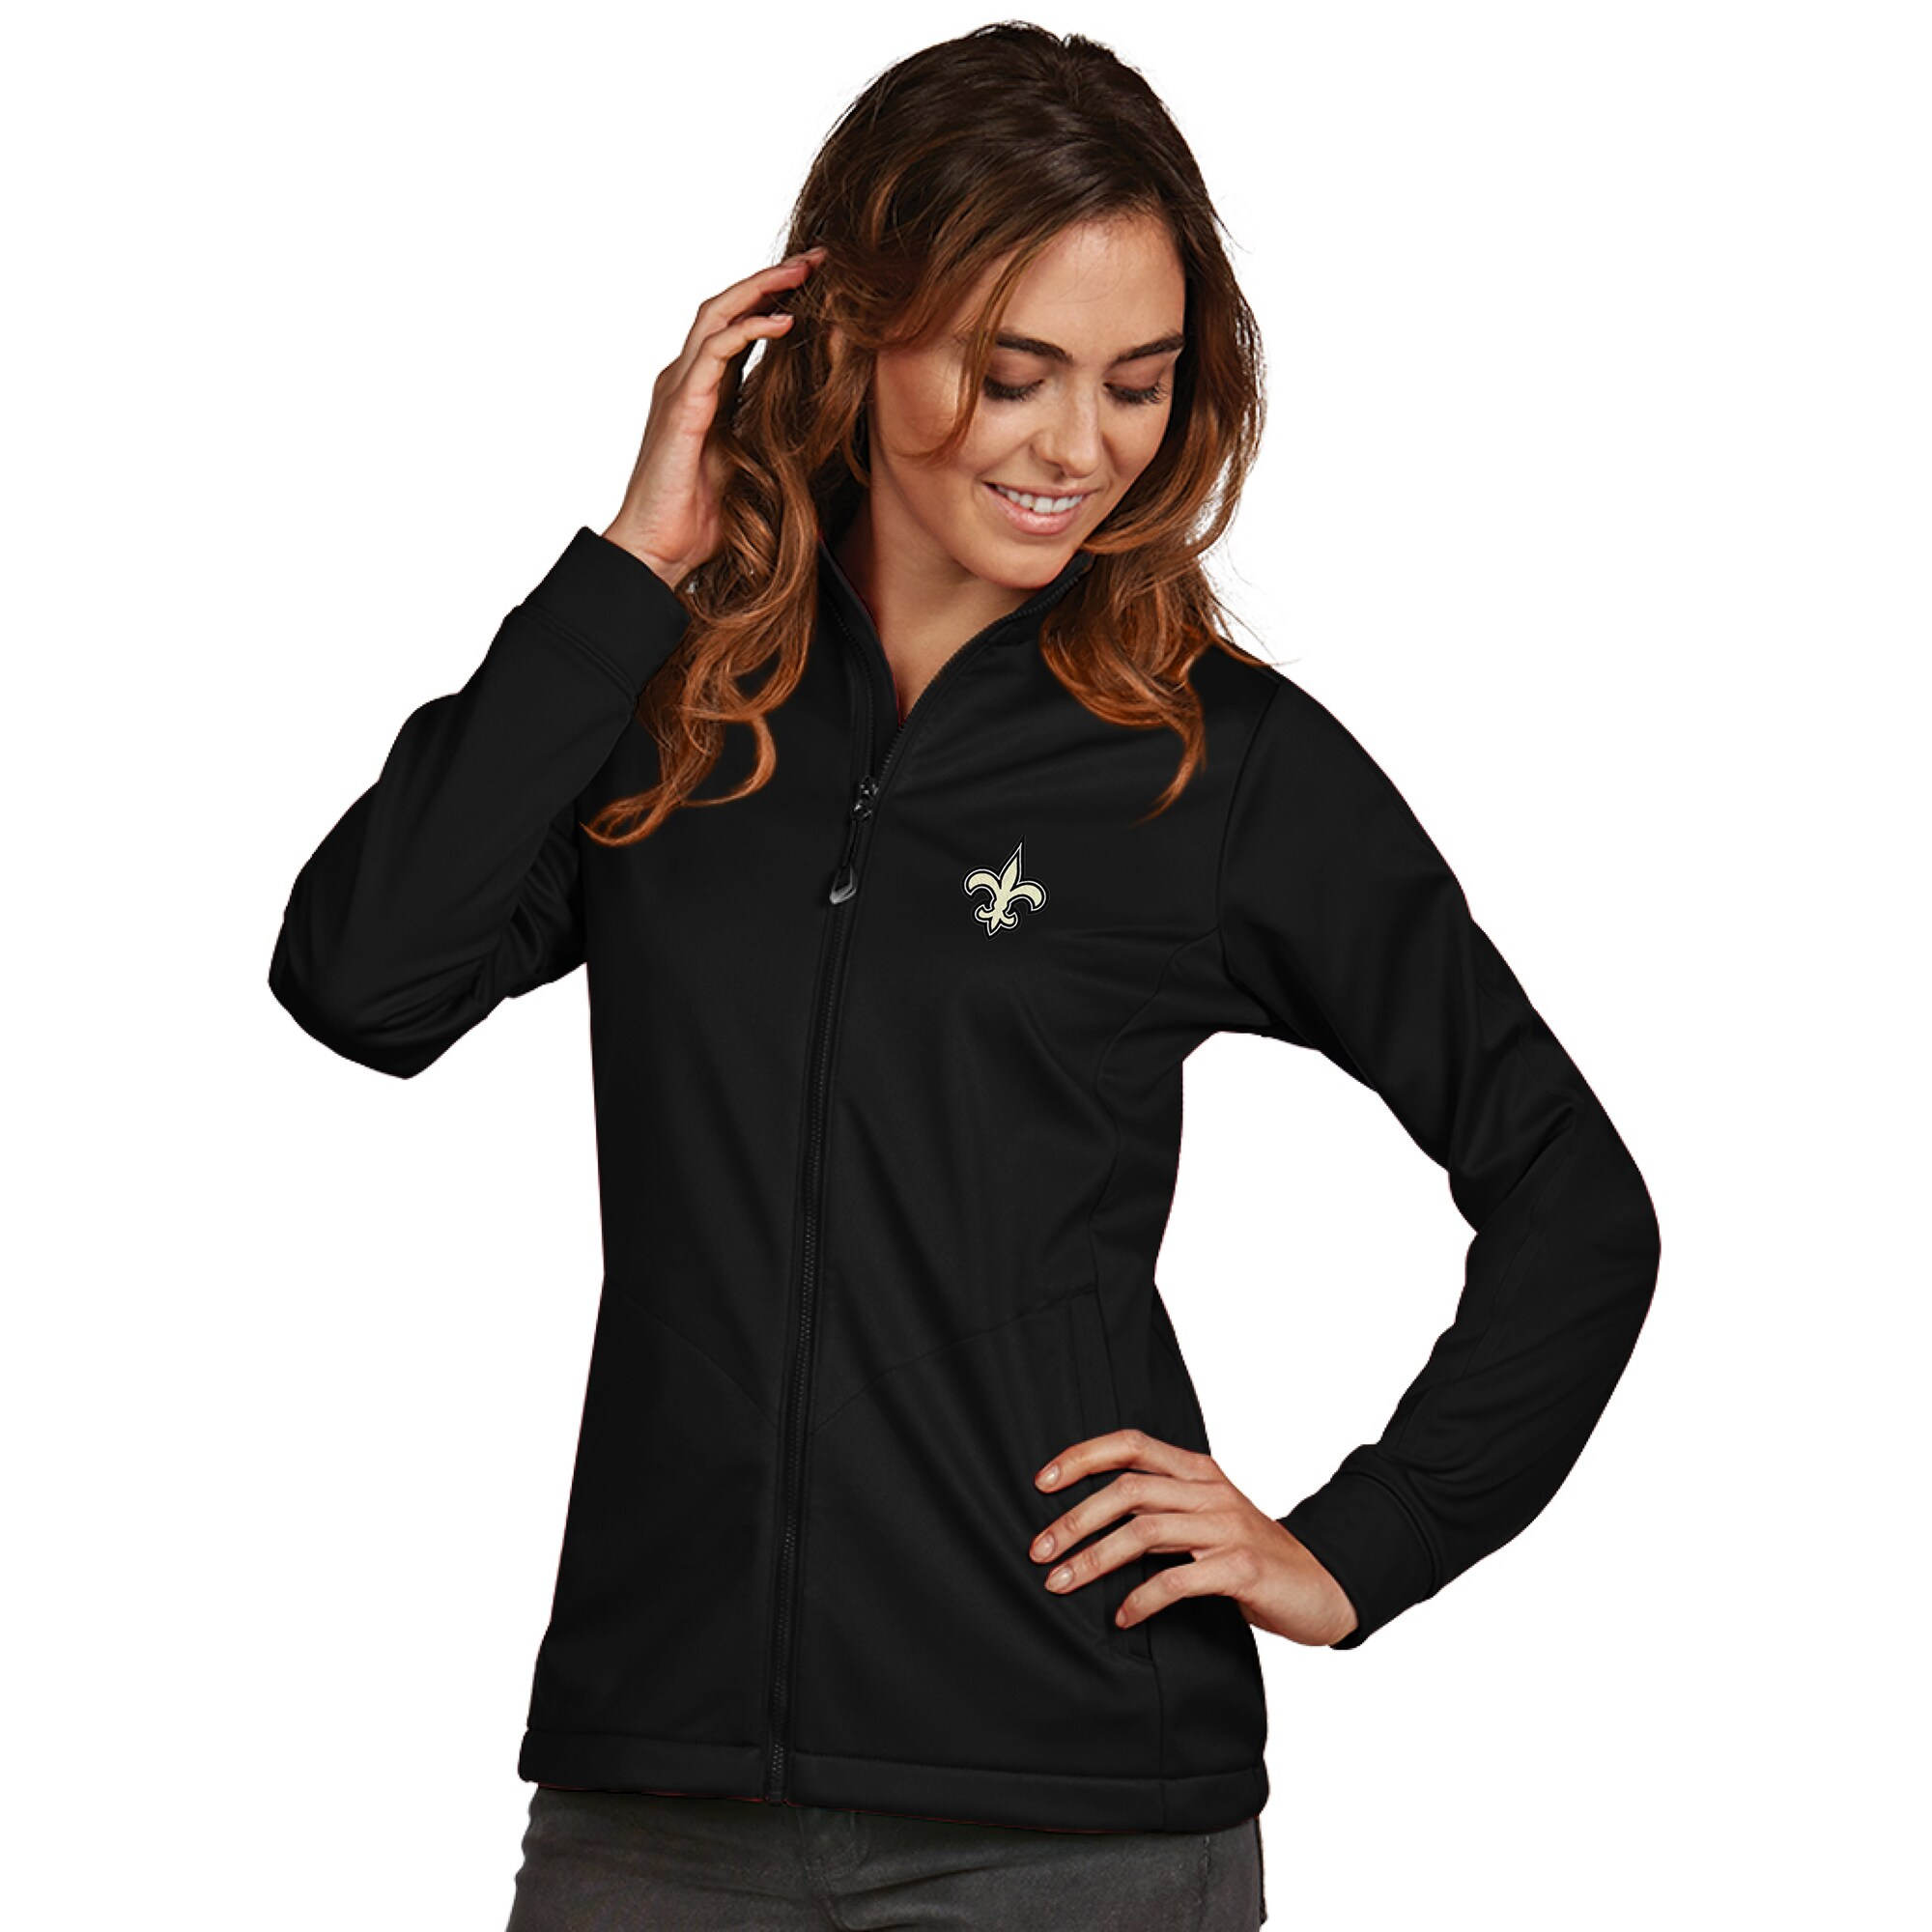 New Orleans Saints Women's Antigua Full-Zip Golf Jacket - Black